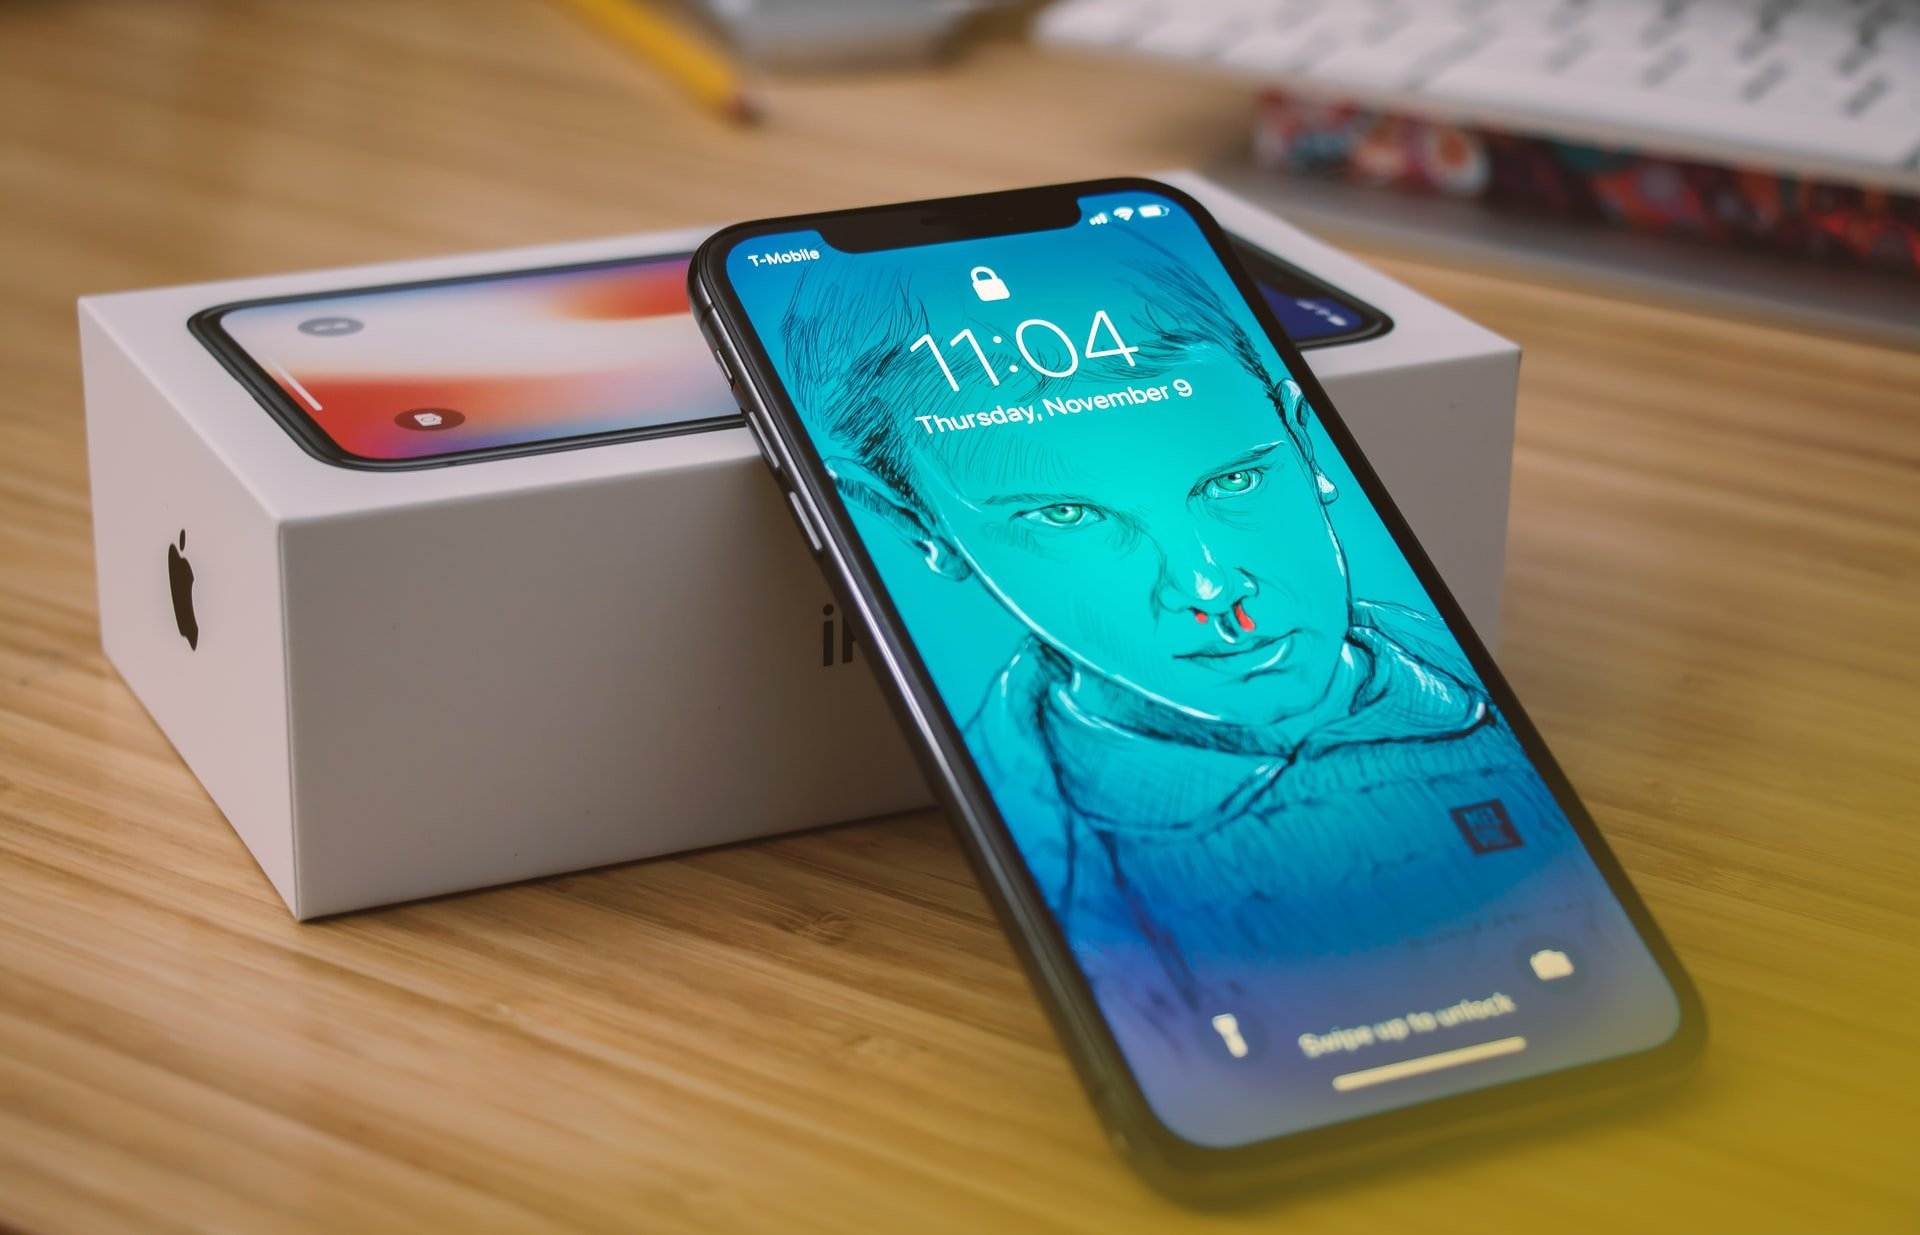 Brand new iPhone X with box on table   Source: Unsplash